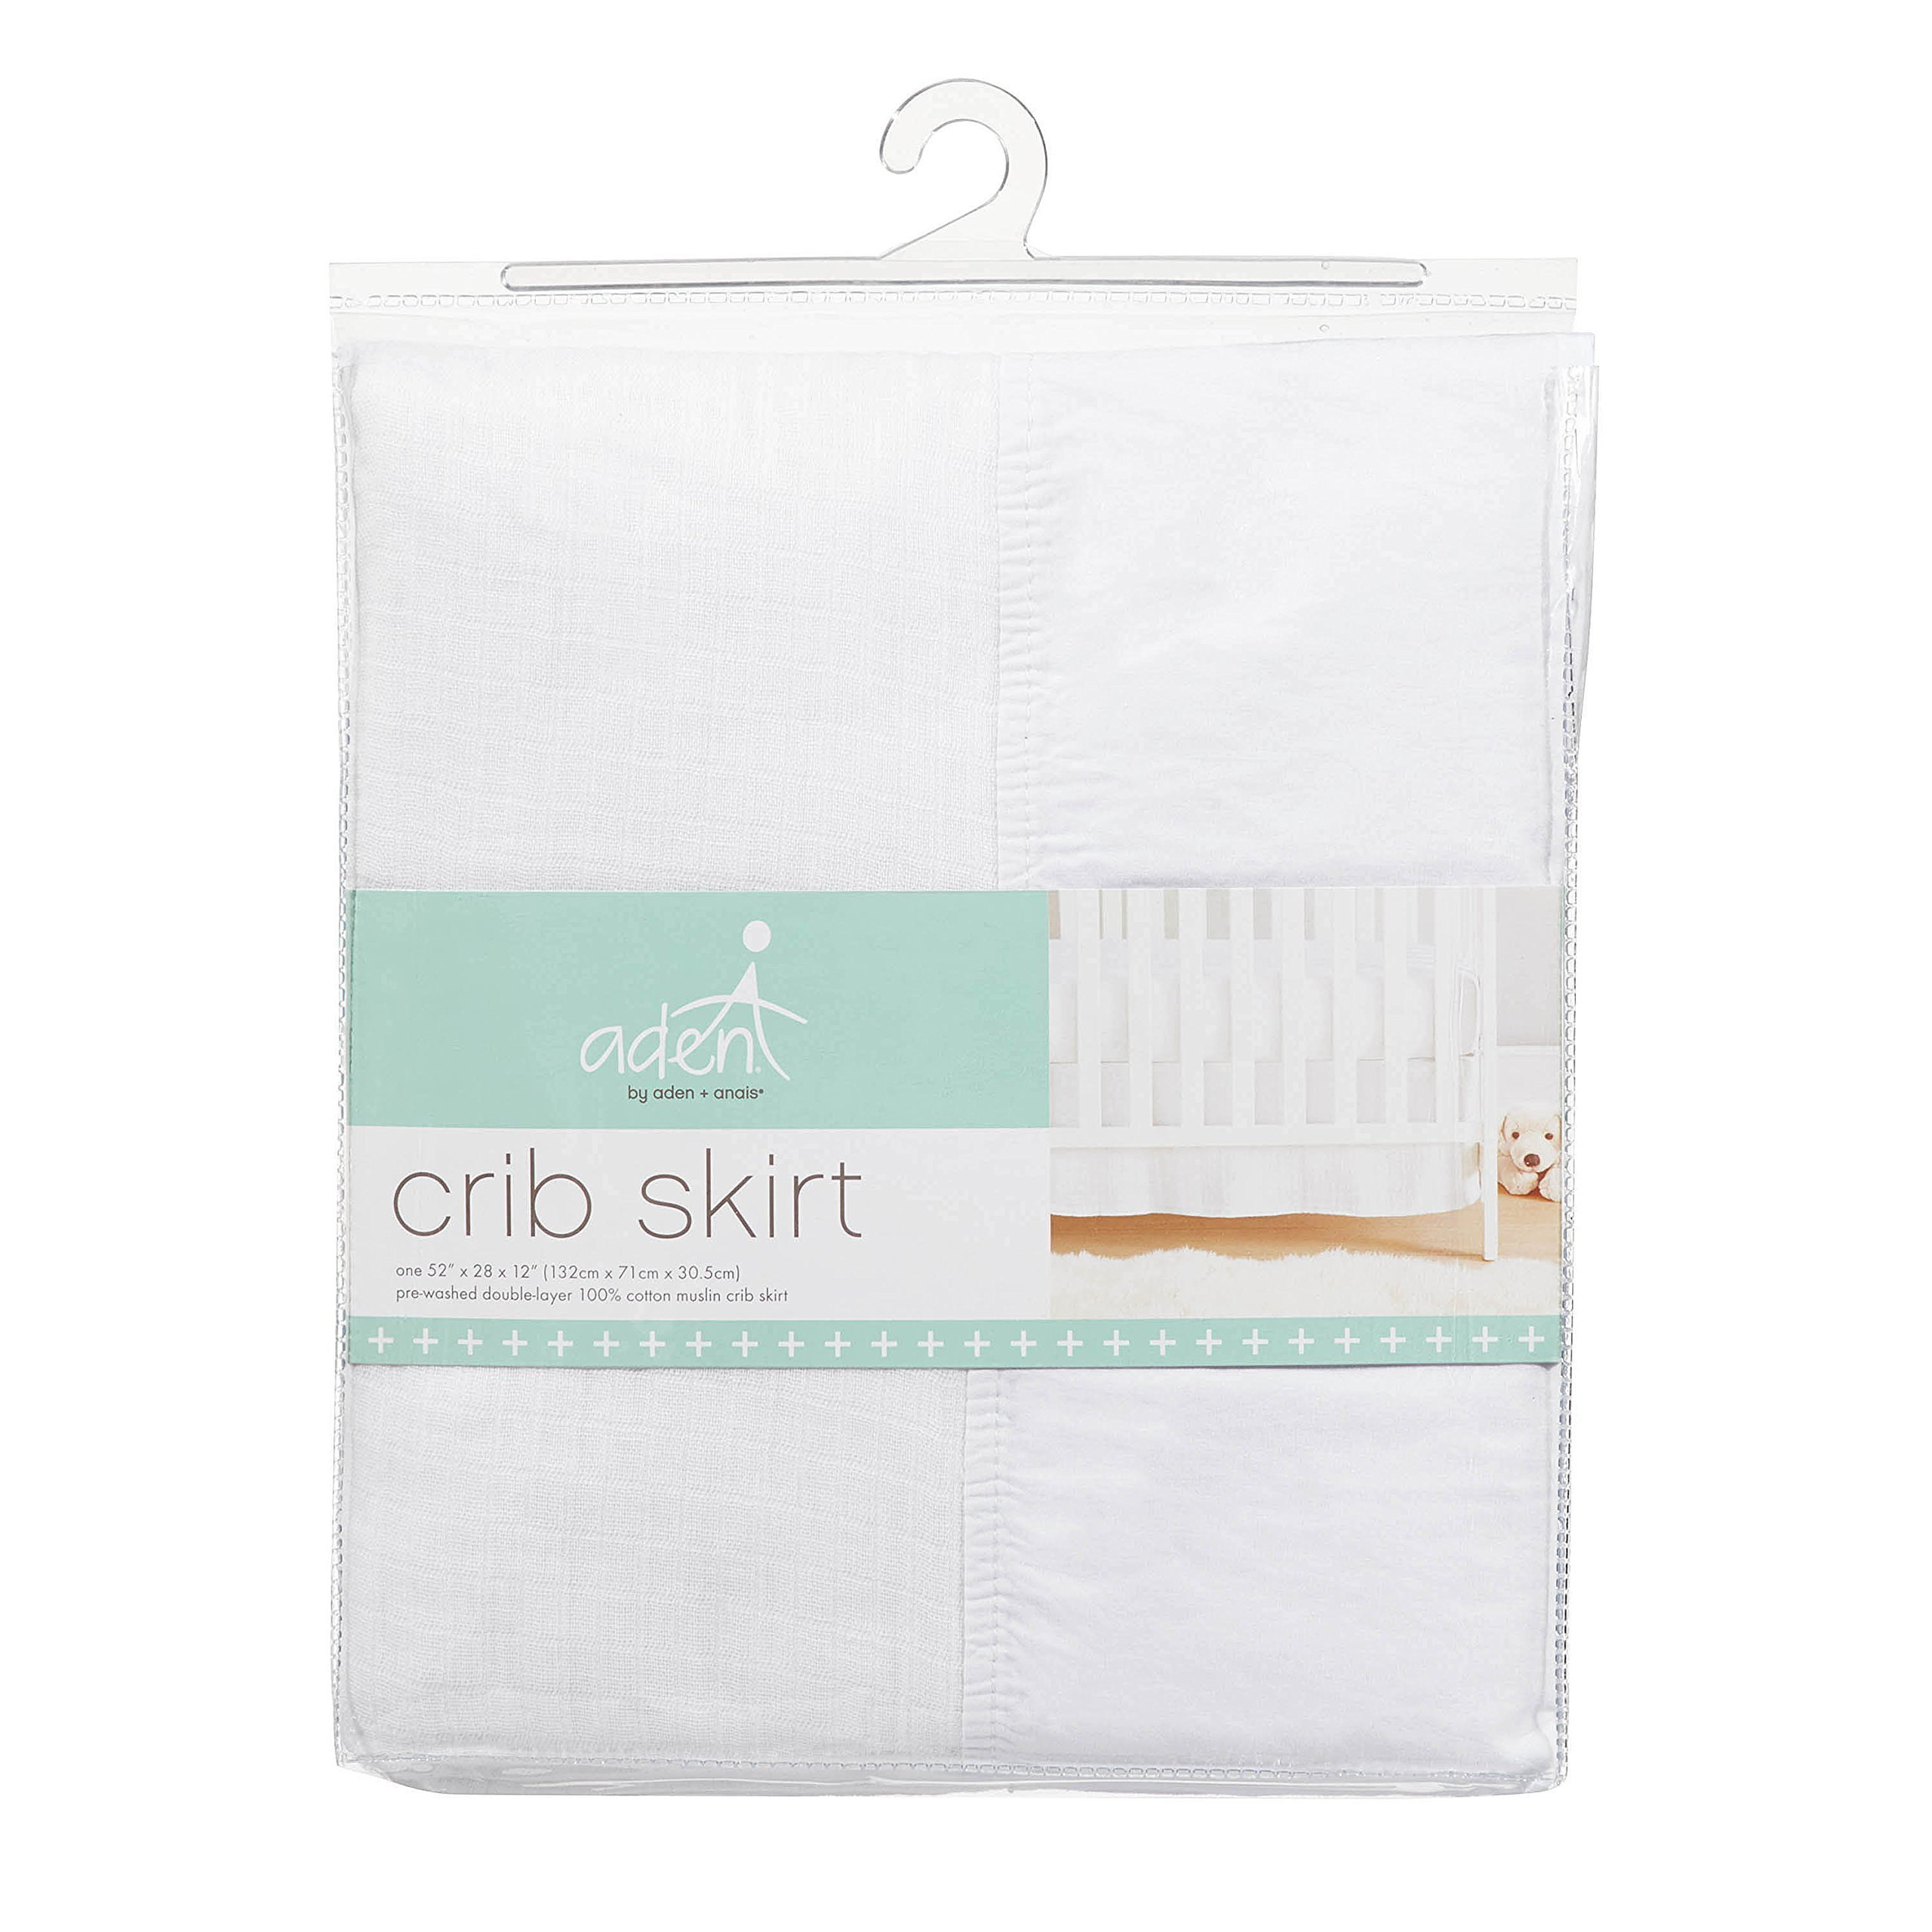 aden by aden + anais crib skirt, white